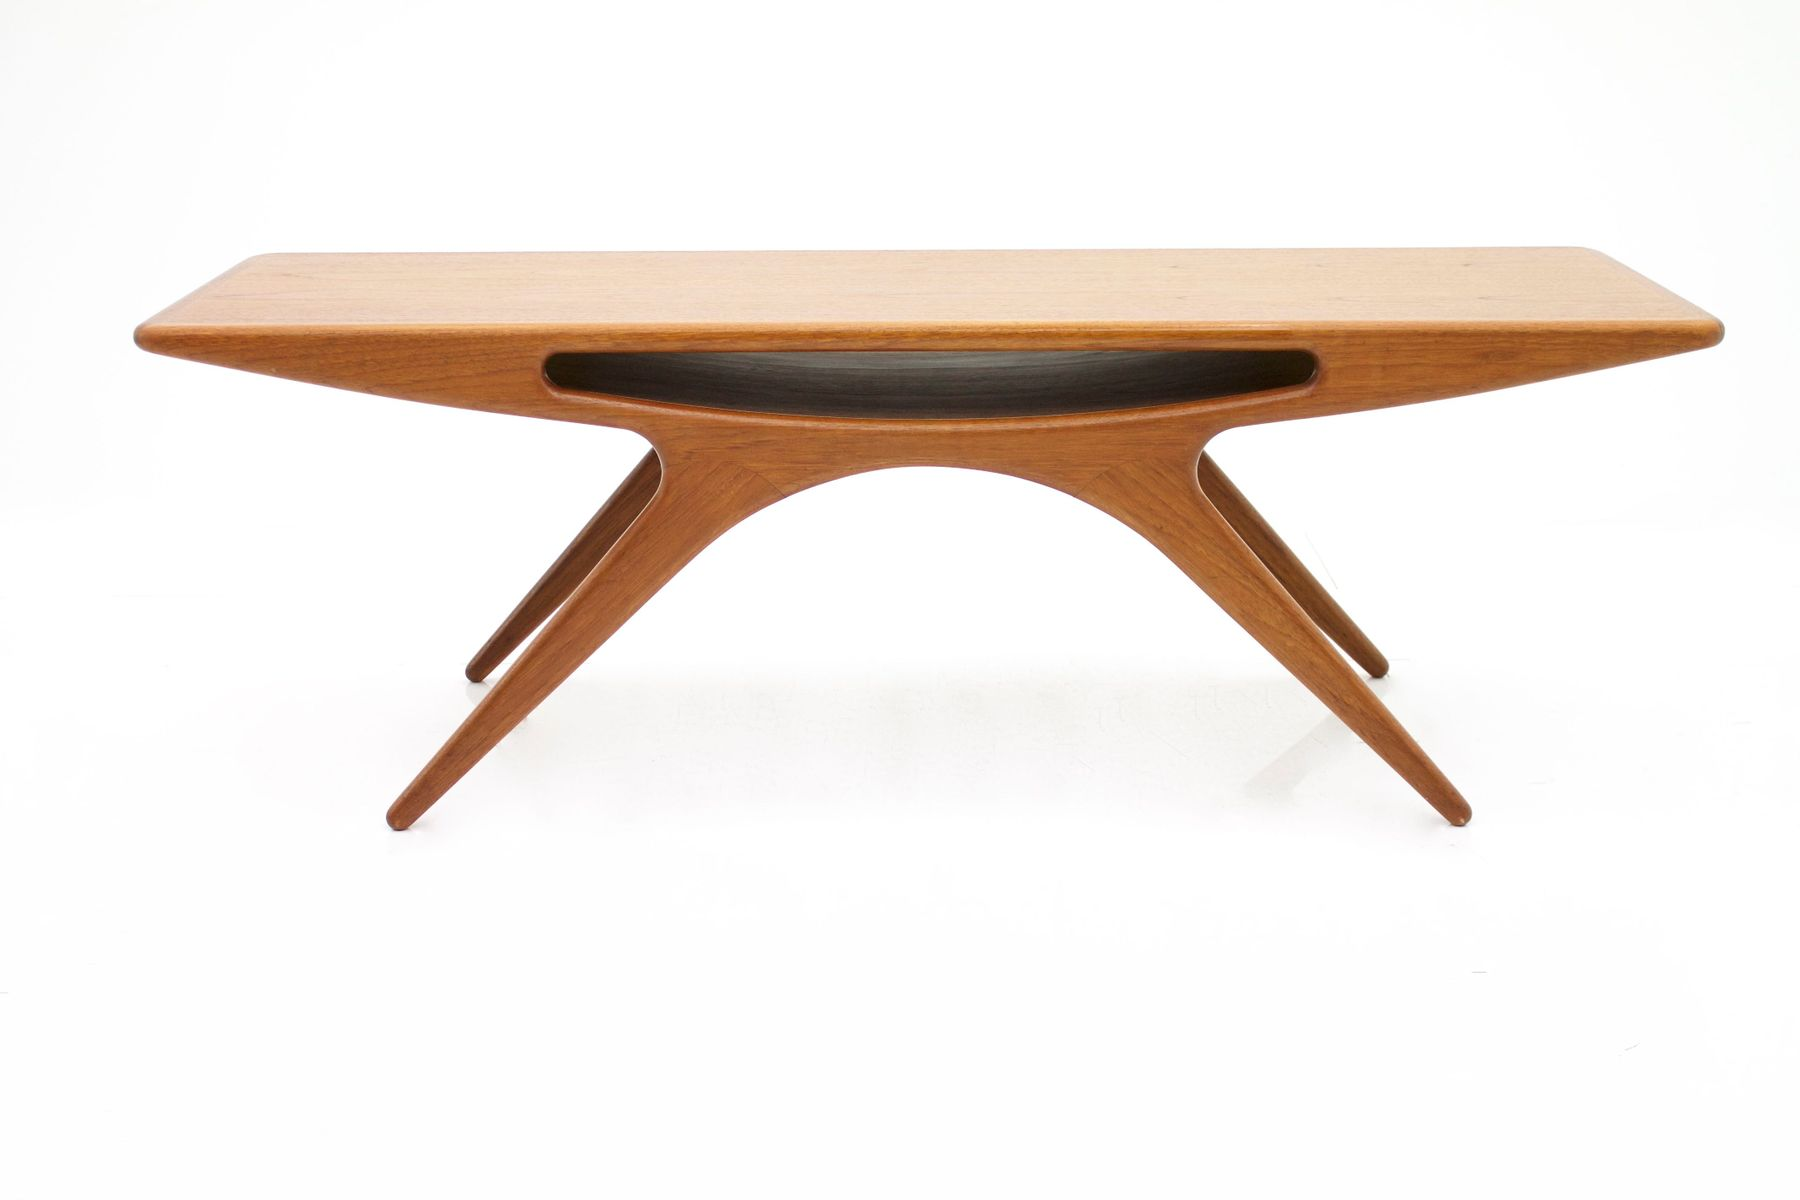 Danish Teak Smile Coffee Table By Johannes Andersen For Cfc Silkeborg 1950s For Sale At Pamono